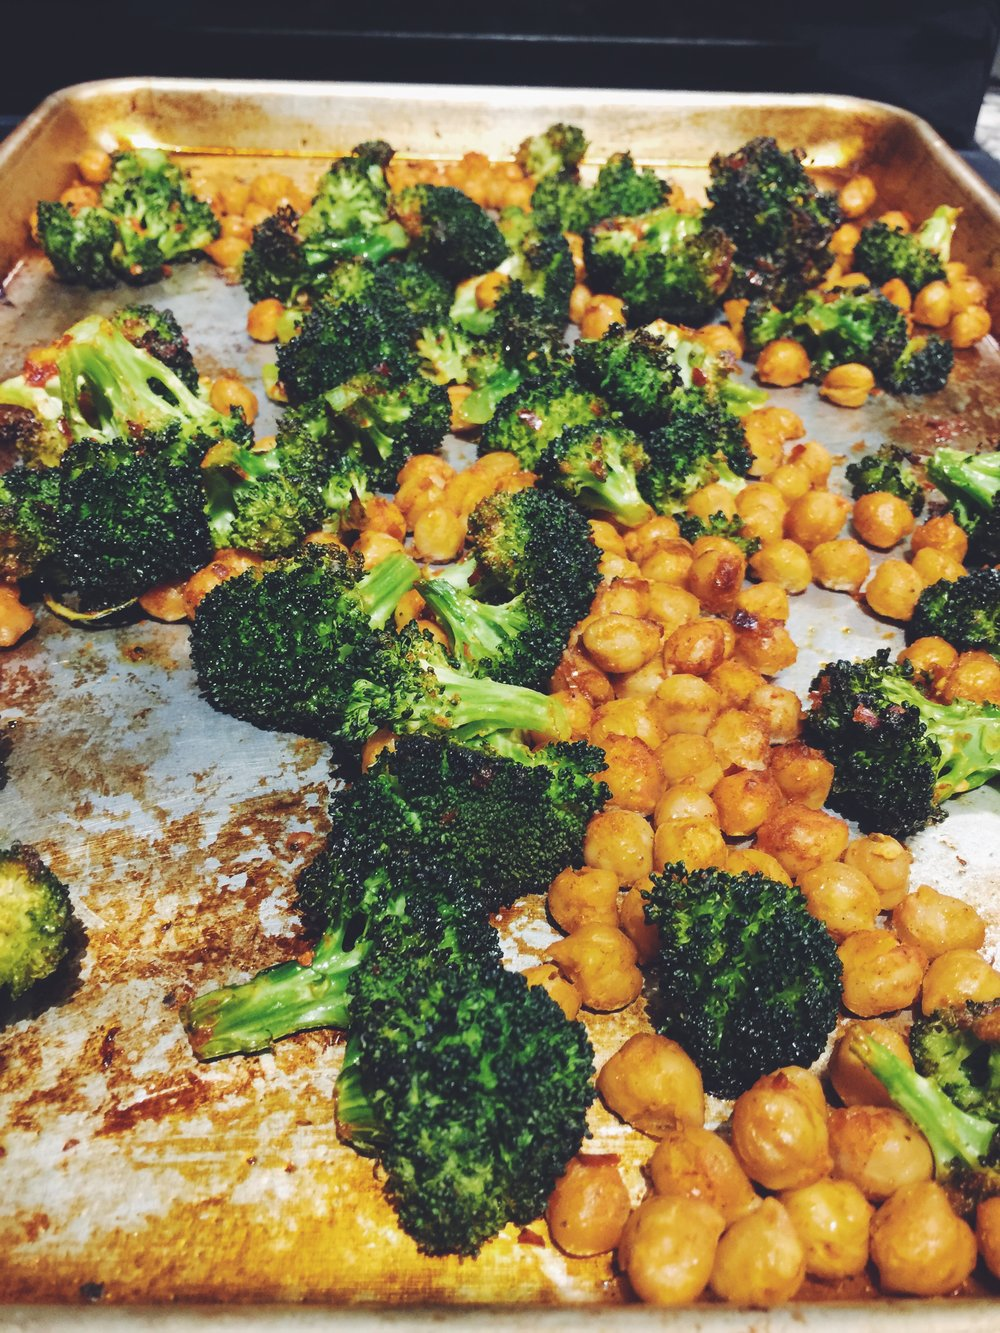 broccoli and chickpeas